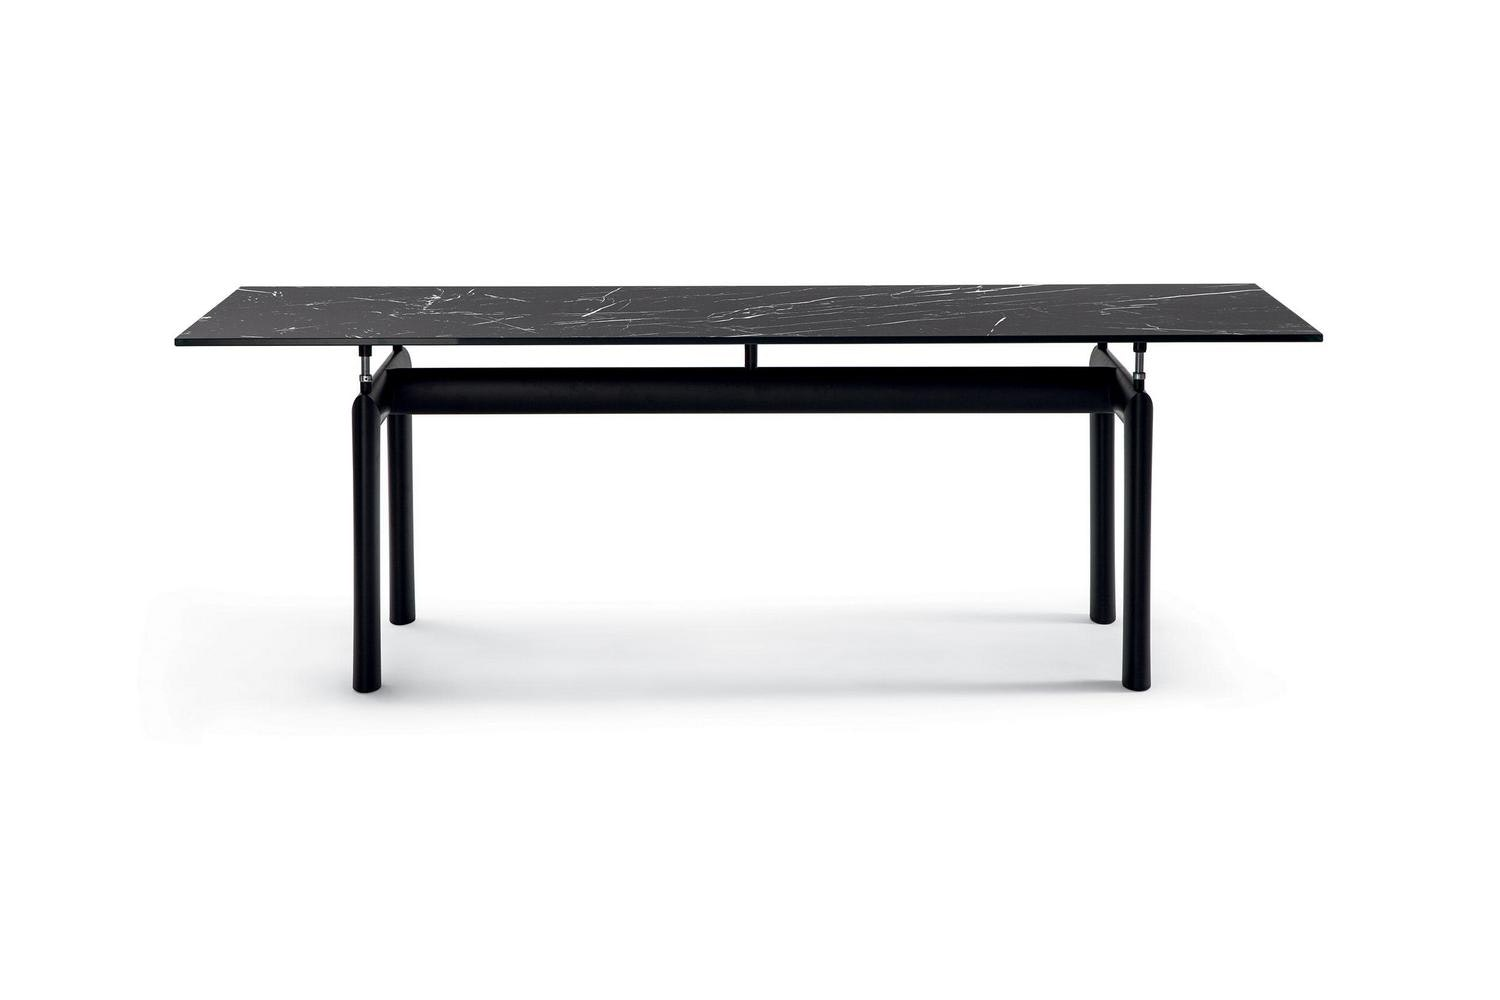 LC6 Table by Le Corbusier, Pierre Jeanneret and Charlotte Perriand for Cassina